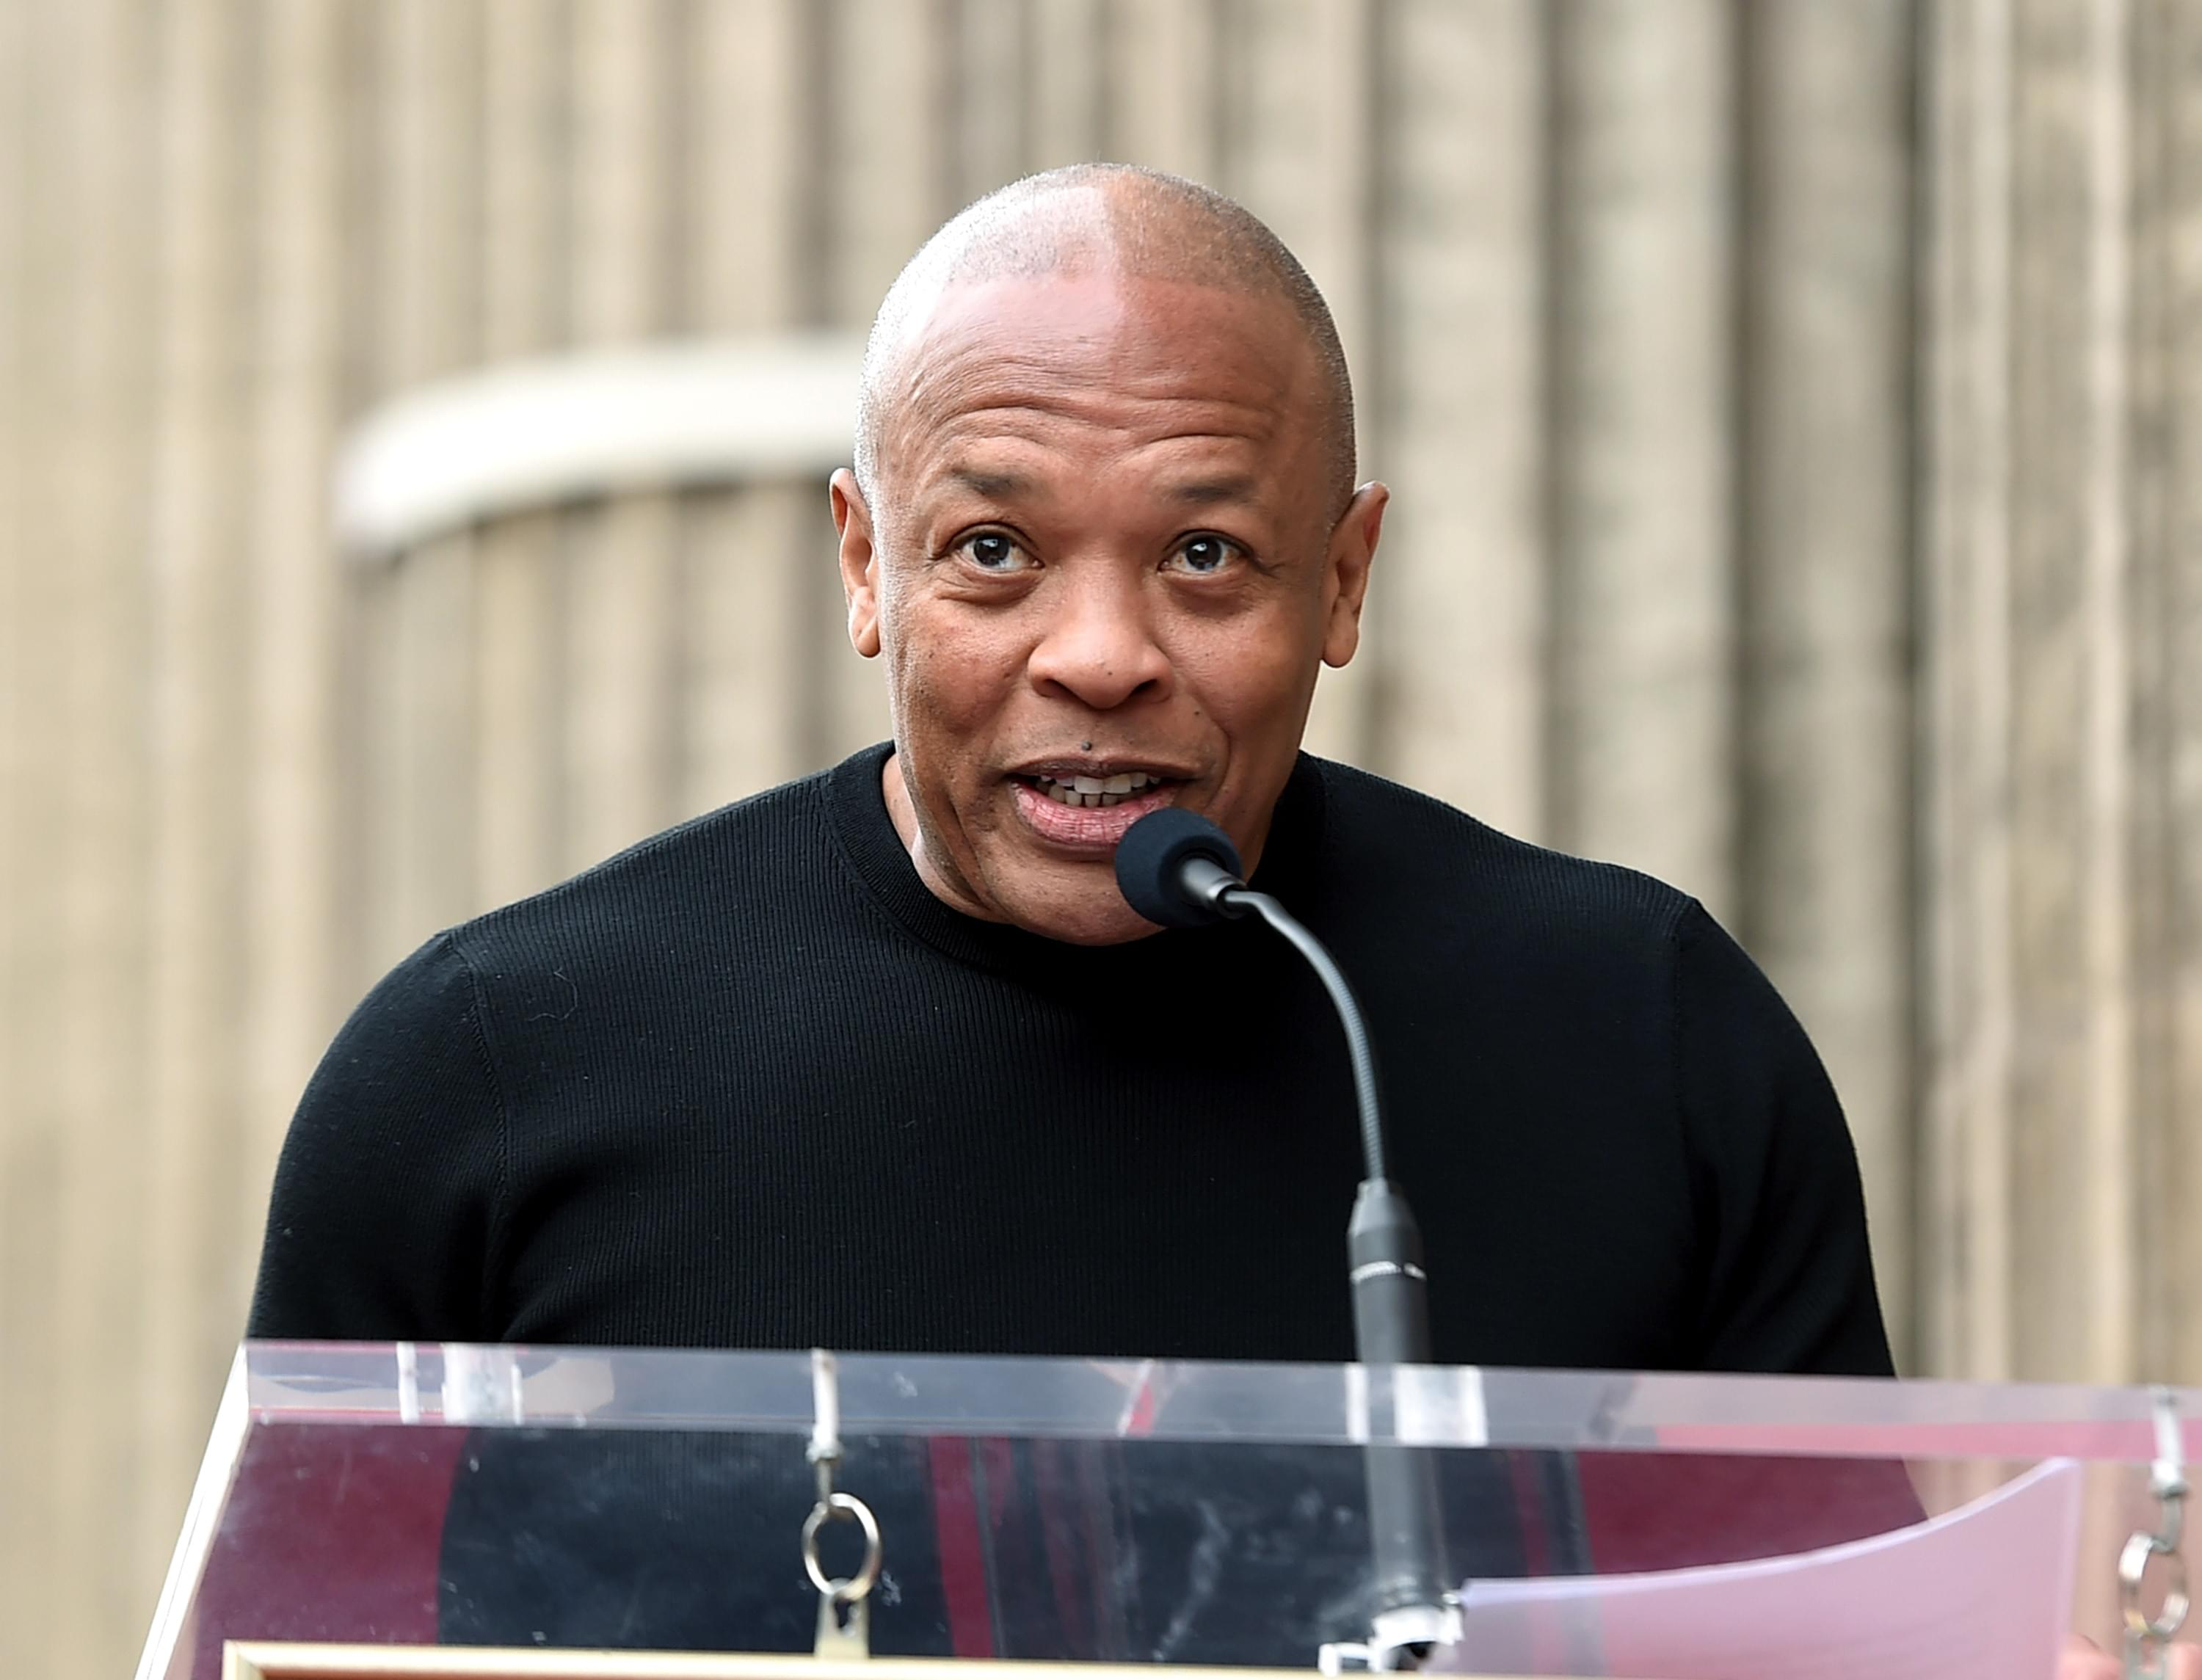 Dr. Dre & His Wife Sued for Allegedly Not Paying Their Housekeeping Staff